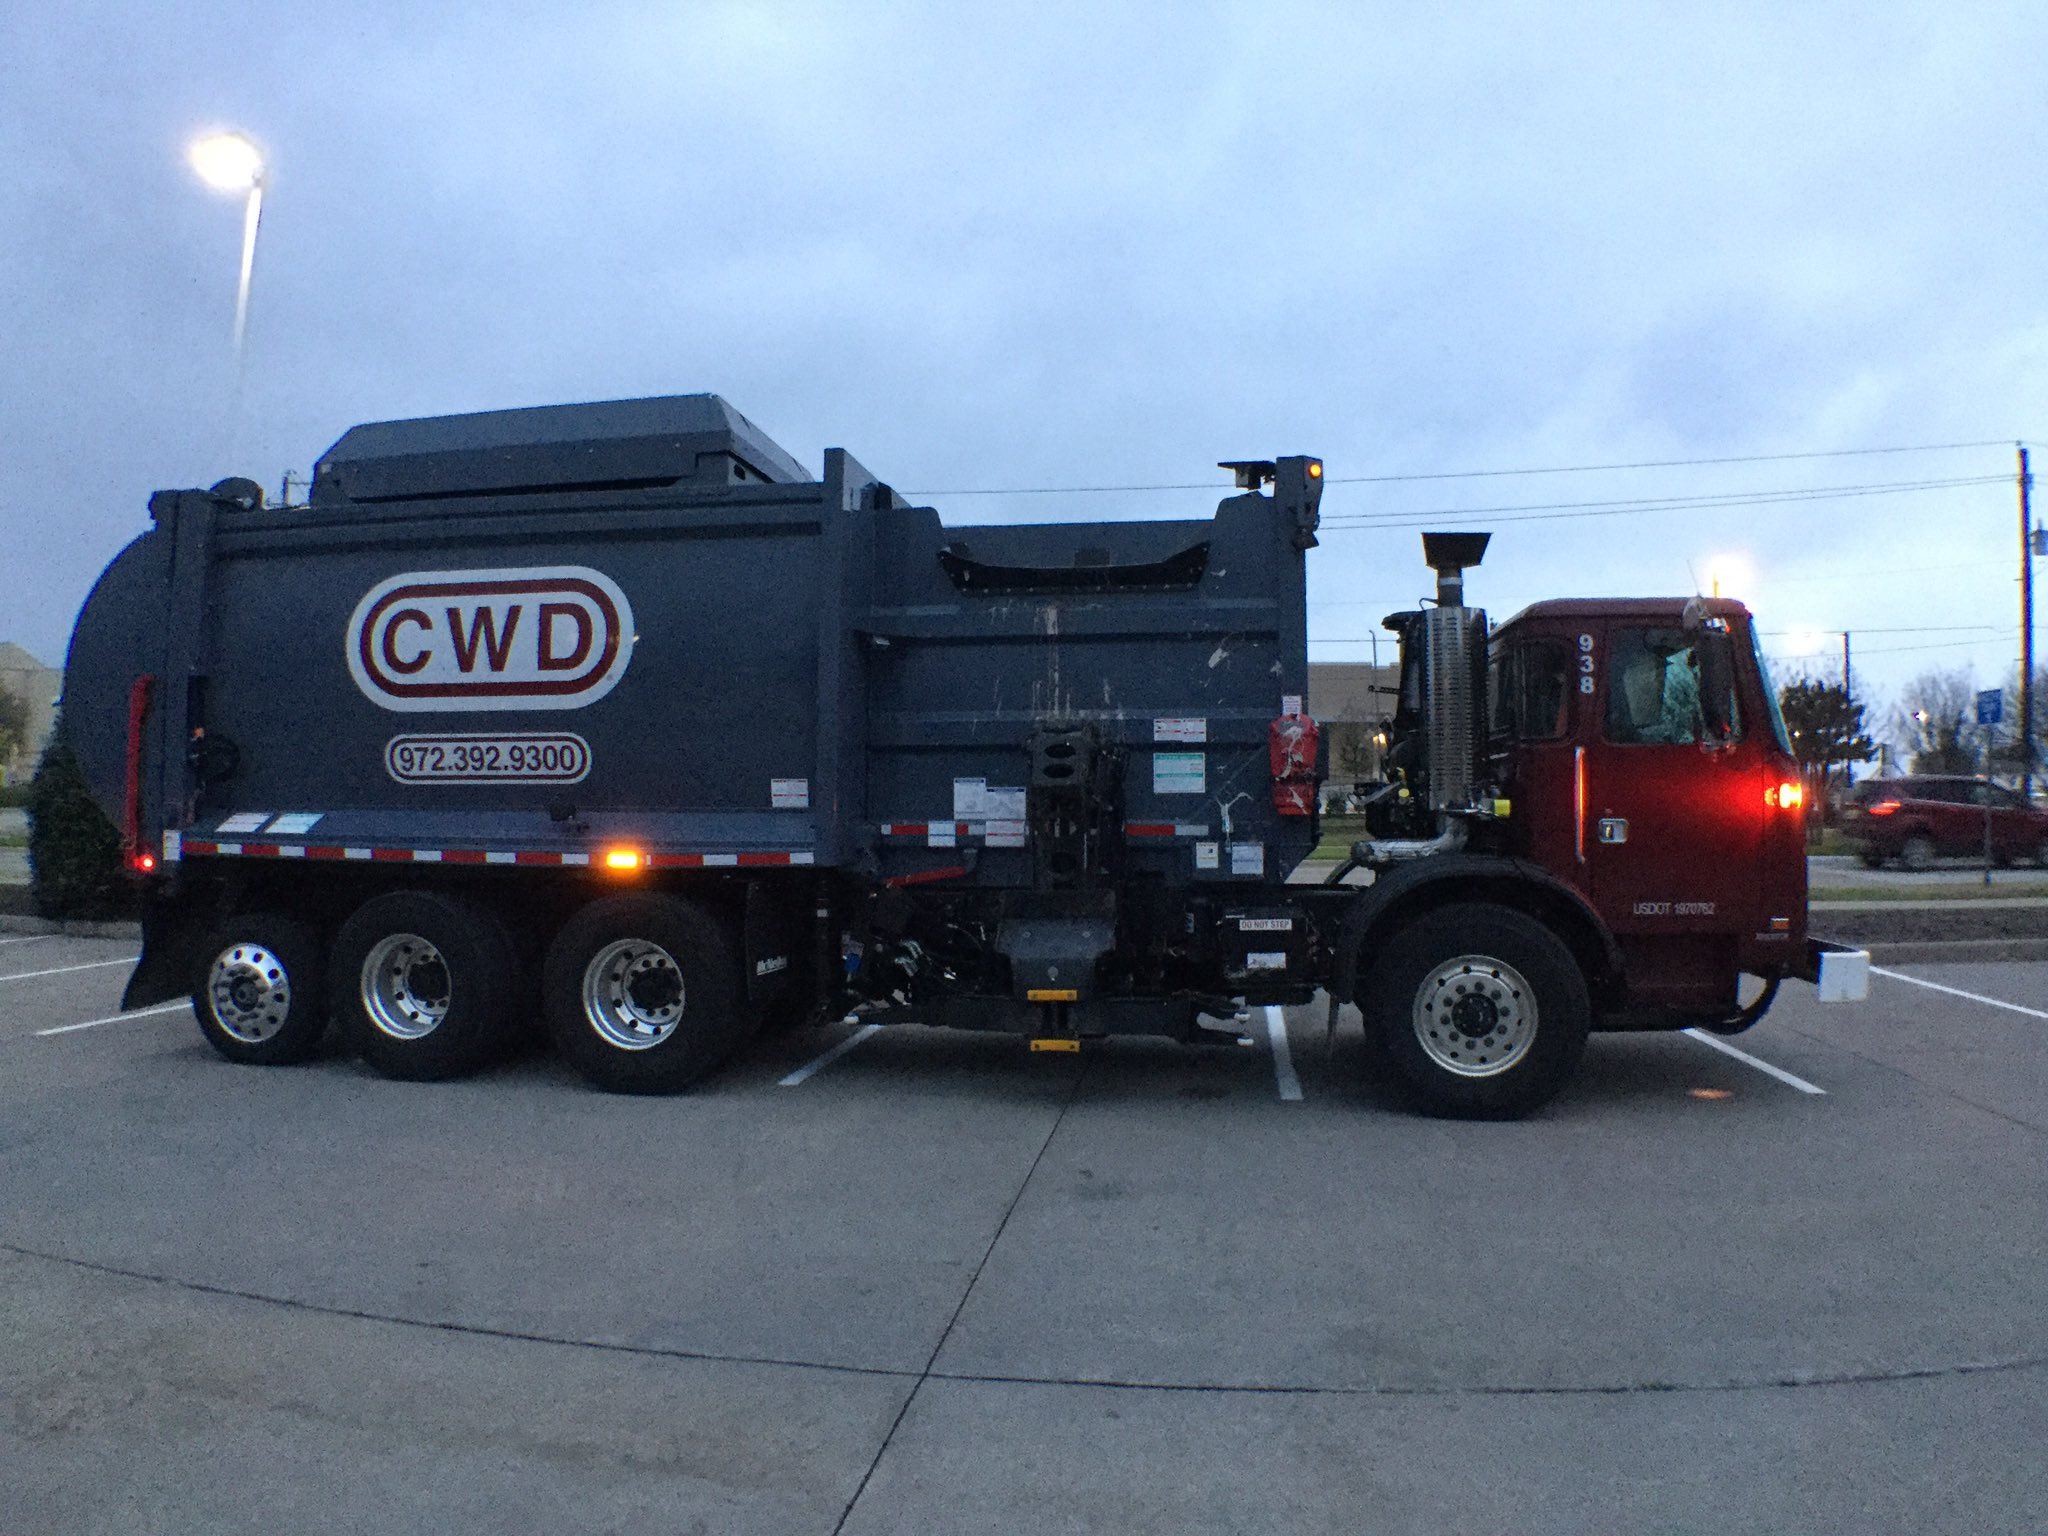 My chariot awaits. These trucks drive 120-150 miles every day! #AllenHashtagAlong @CWDisposal https://t.co/i9IhiPgslc